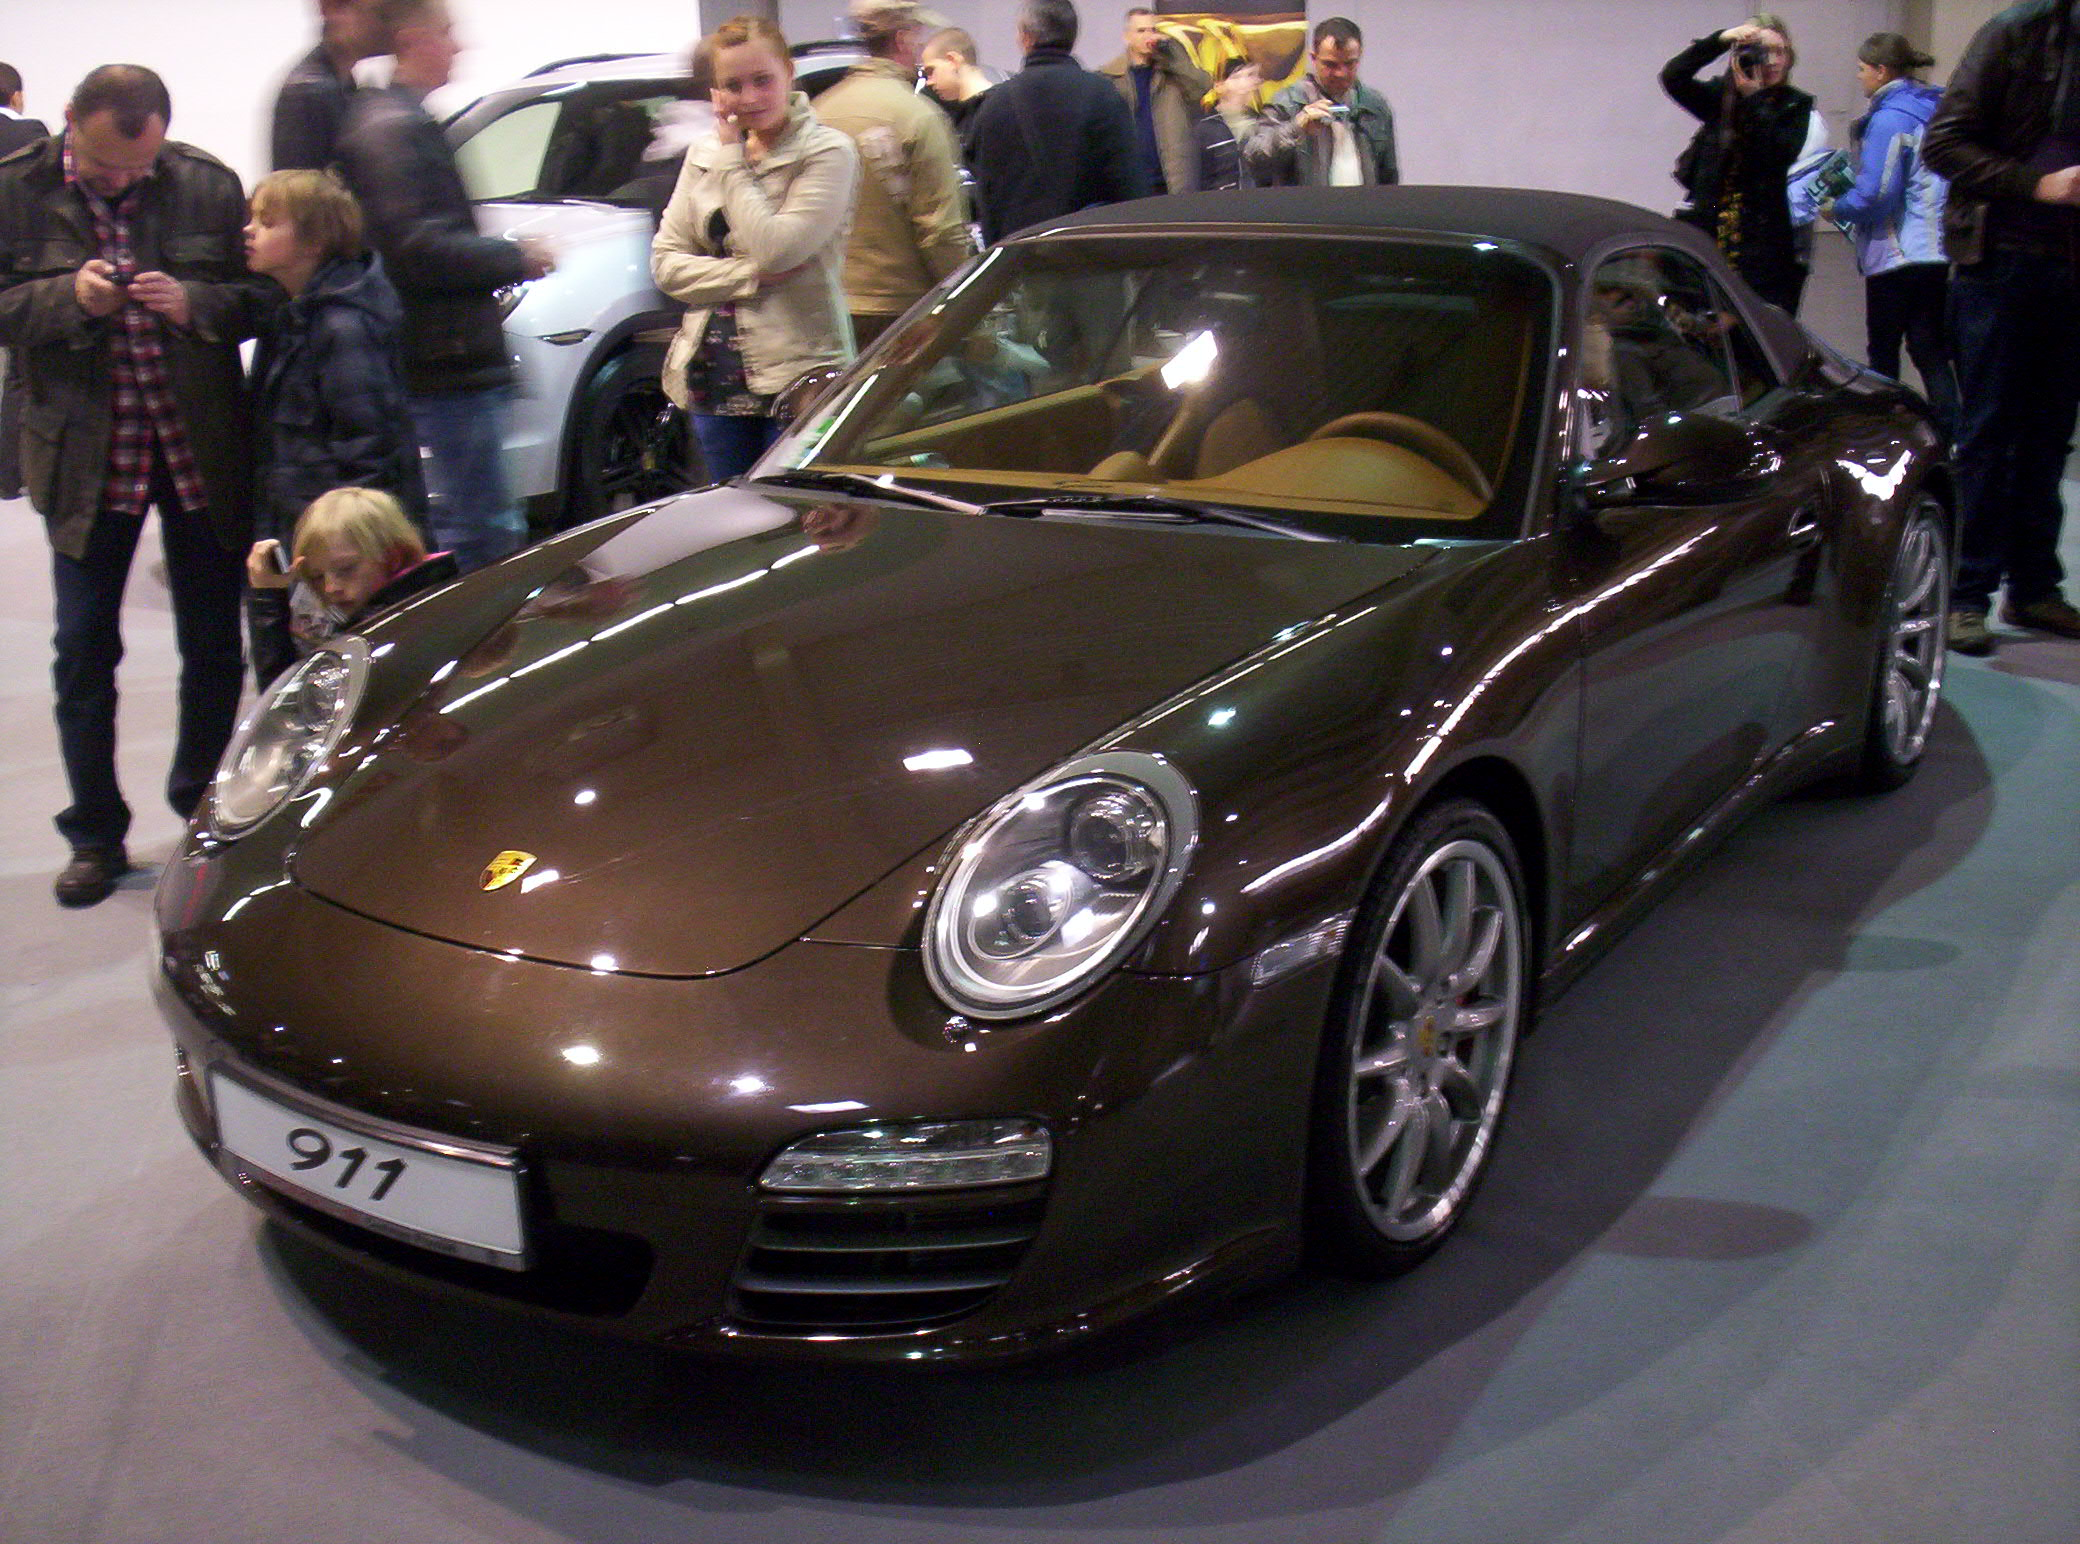 file porsche 911 997 carrera 4s front poznan. Black Bedroom Furniture Sets. Home Design Ideas